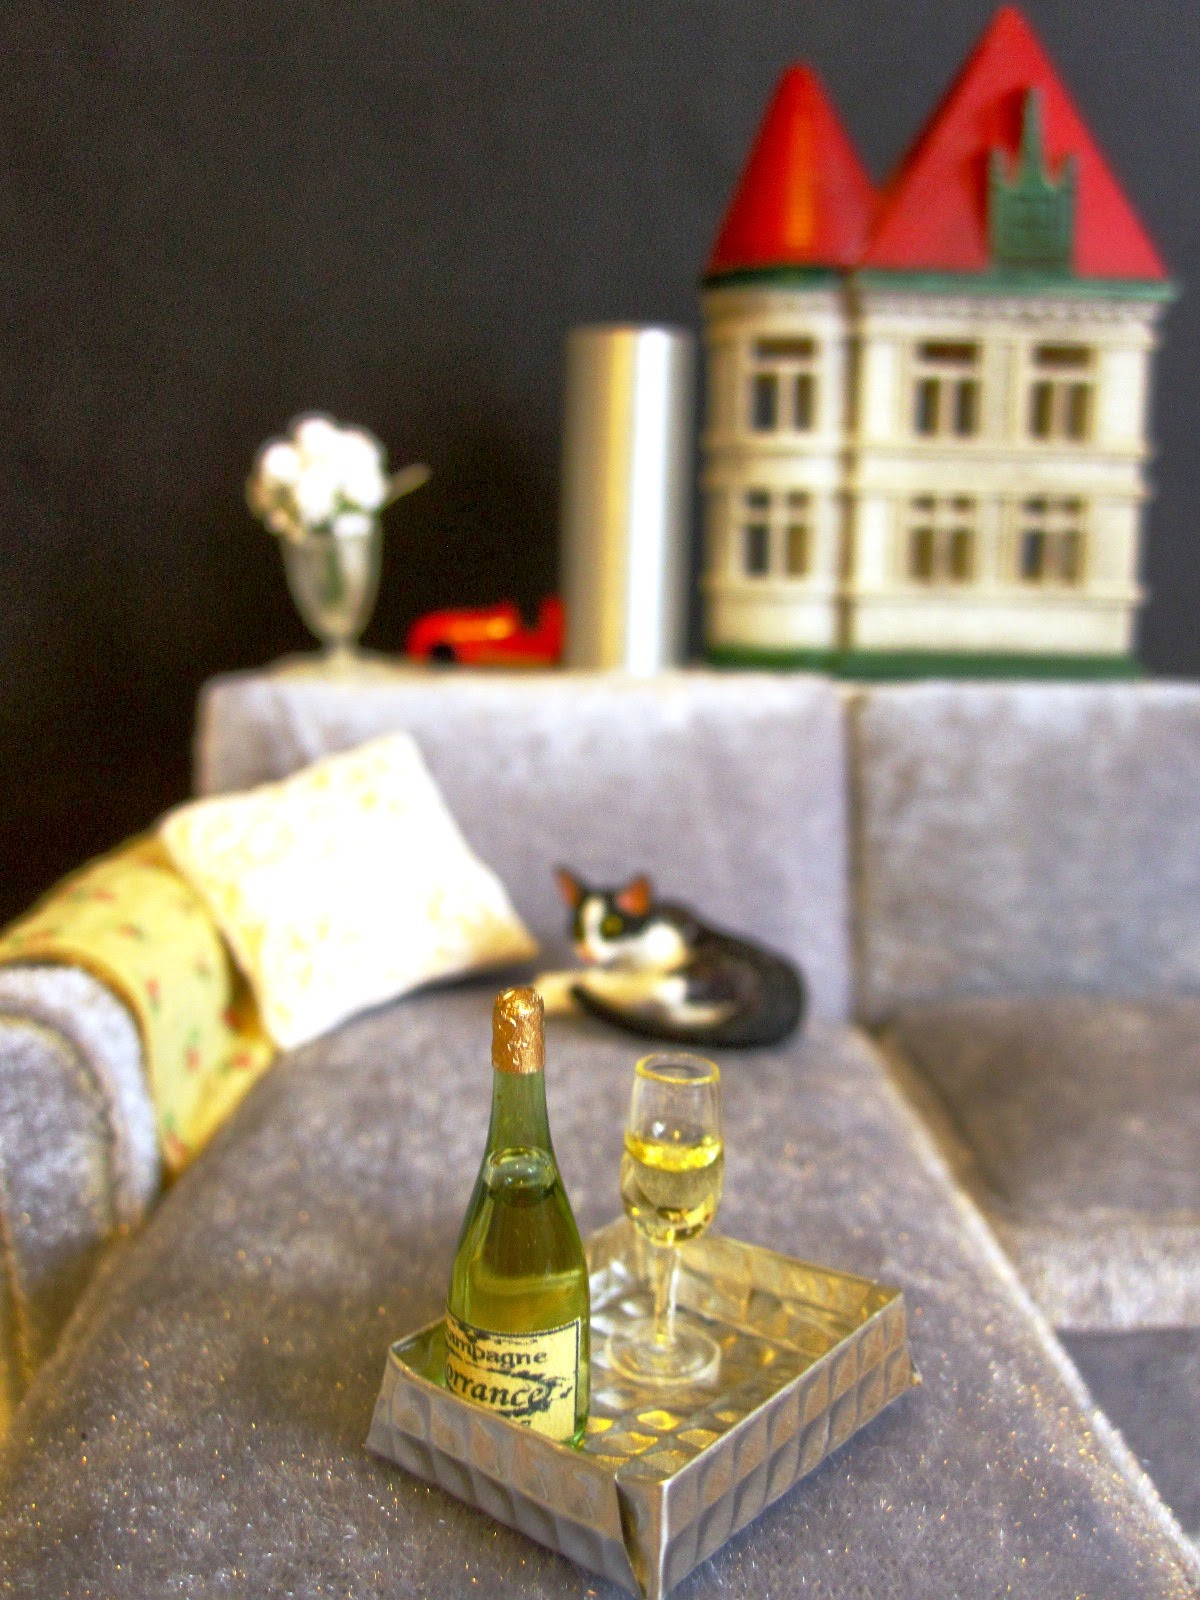 Miniature scene with grey velvet modern miniature chaise sofa, sleeping cat, champagne and miniature dolls house